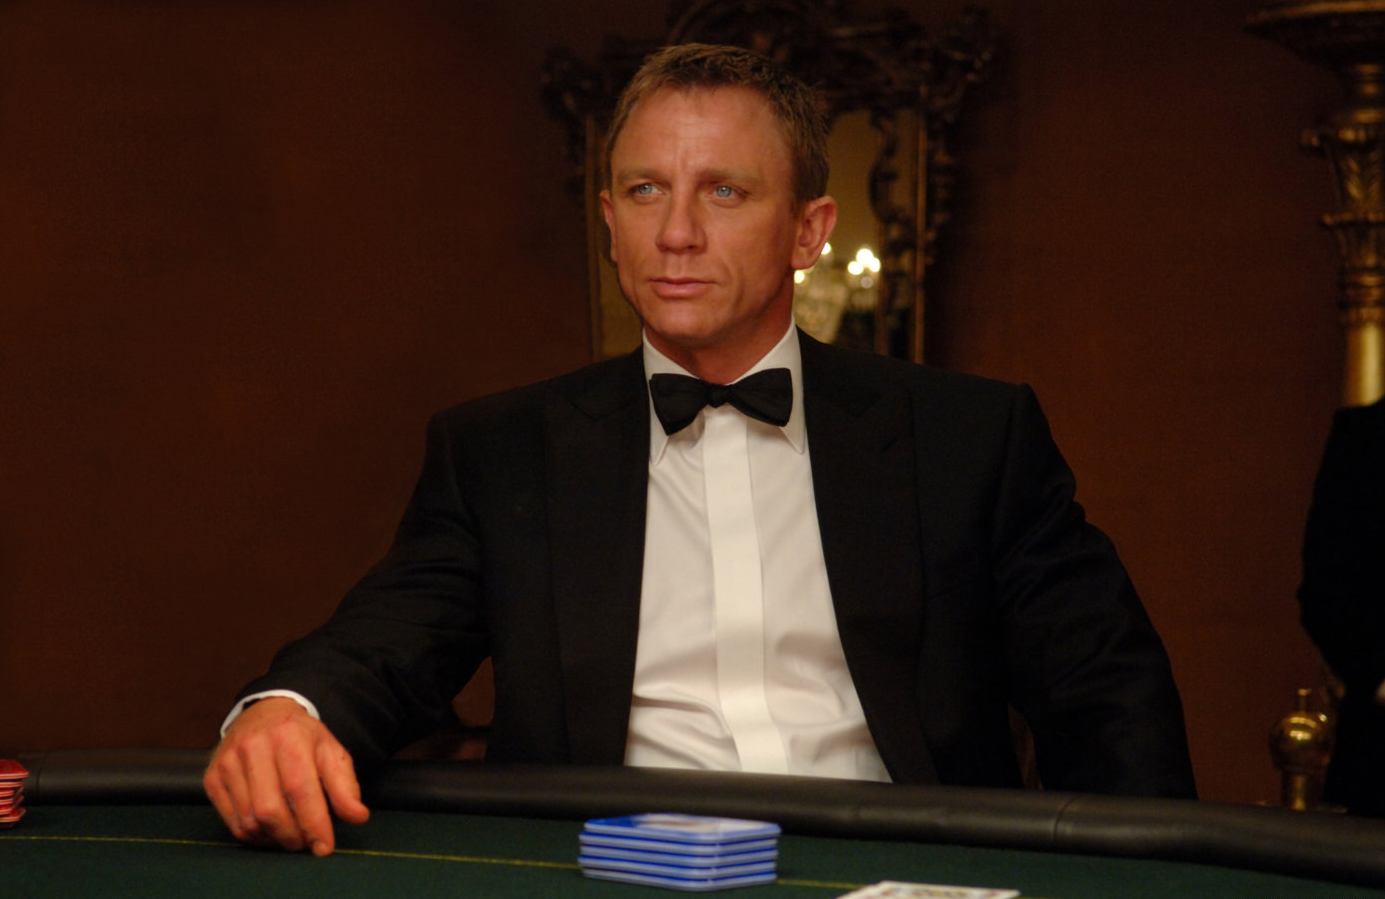 007 – Cassino Royale © 2006 Danjaq LLC, United Artists Corporation, Columbia Pictures Industries Inc.